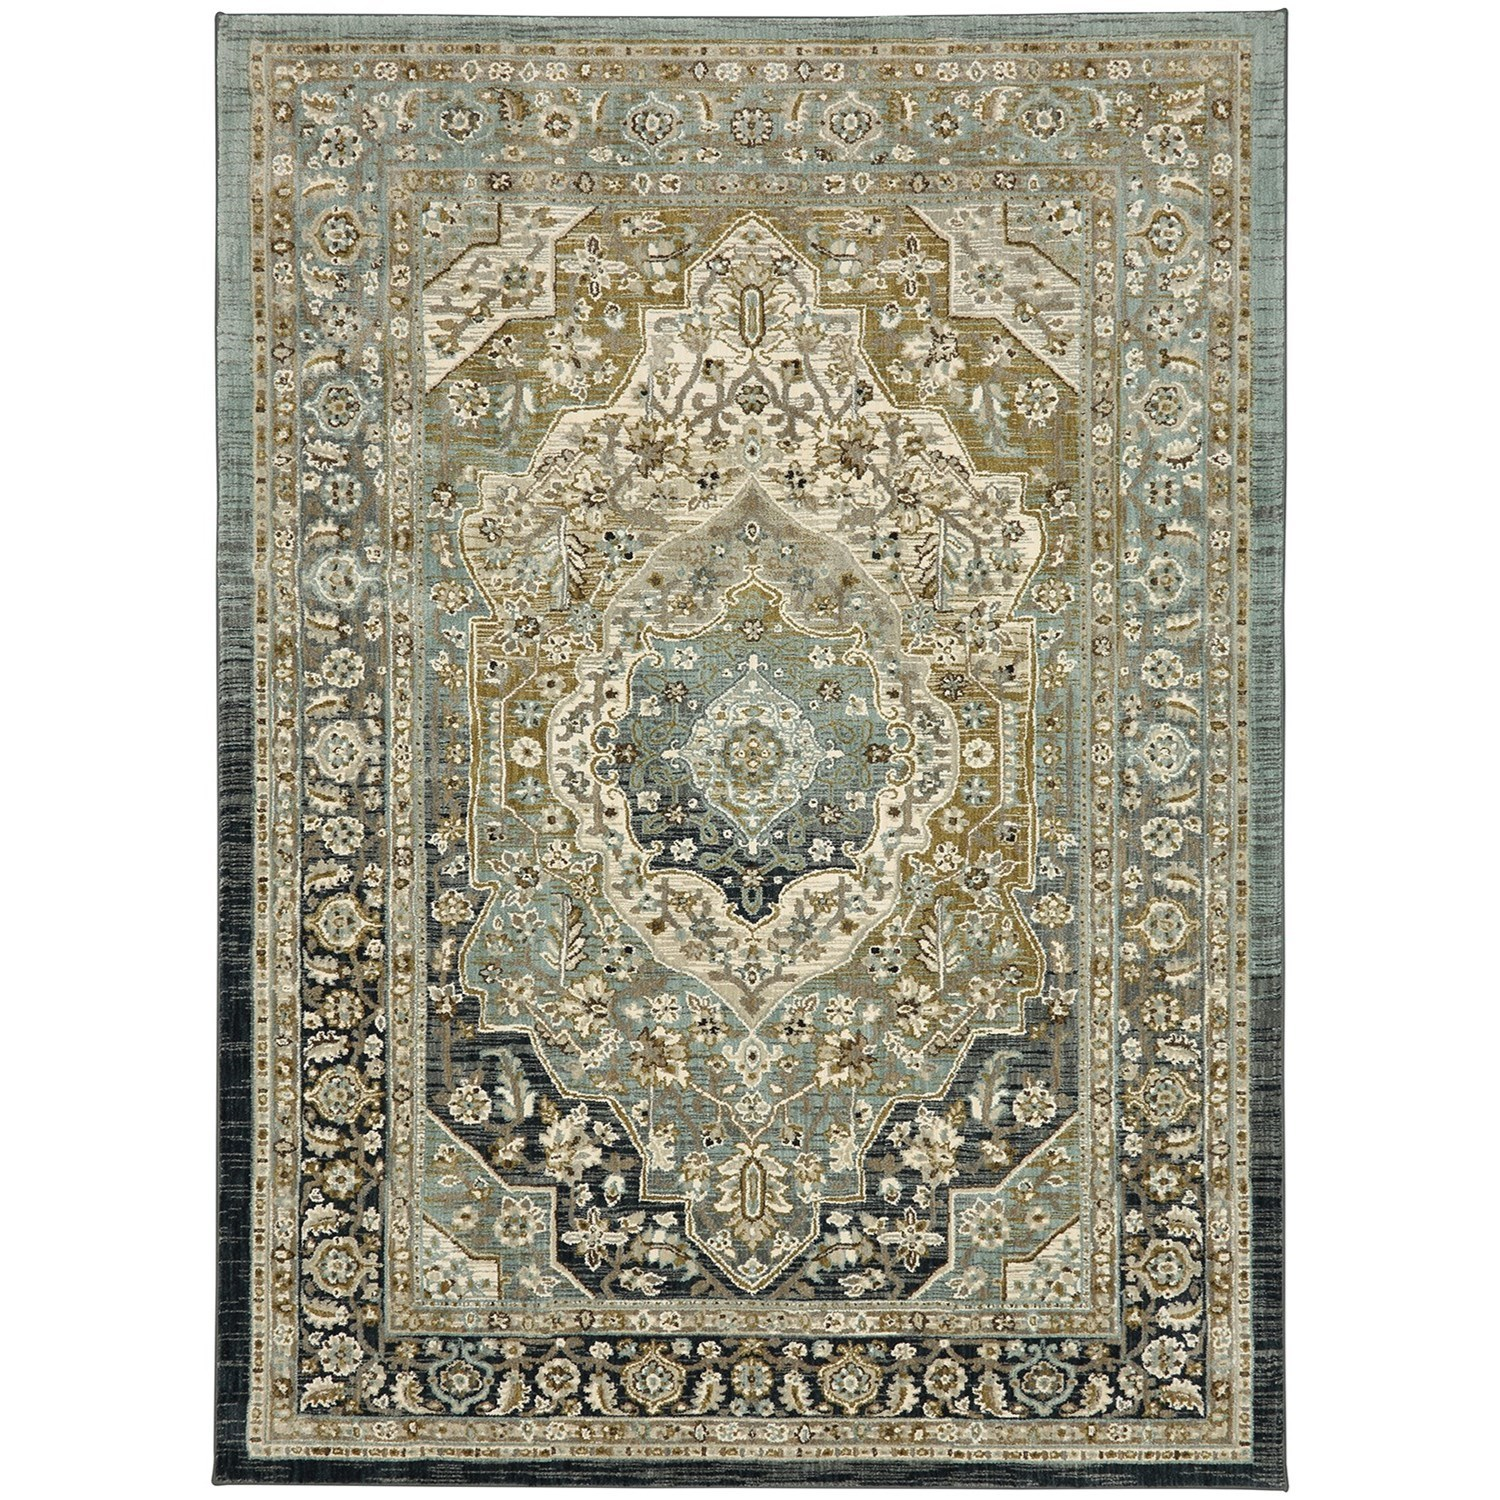 "Touchstone 9' 6""x12' 11"" Rectangle Ornamental Area Rug by Karastan Rugs at Alison Craig Home Furnishings"